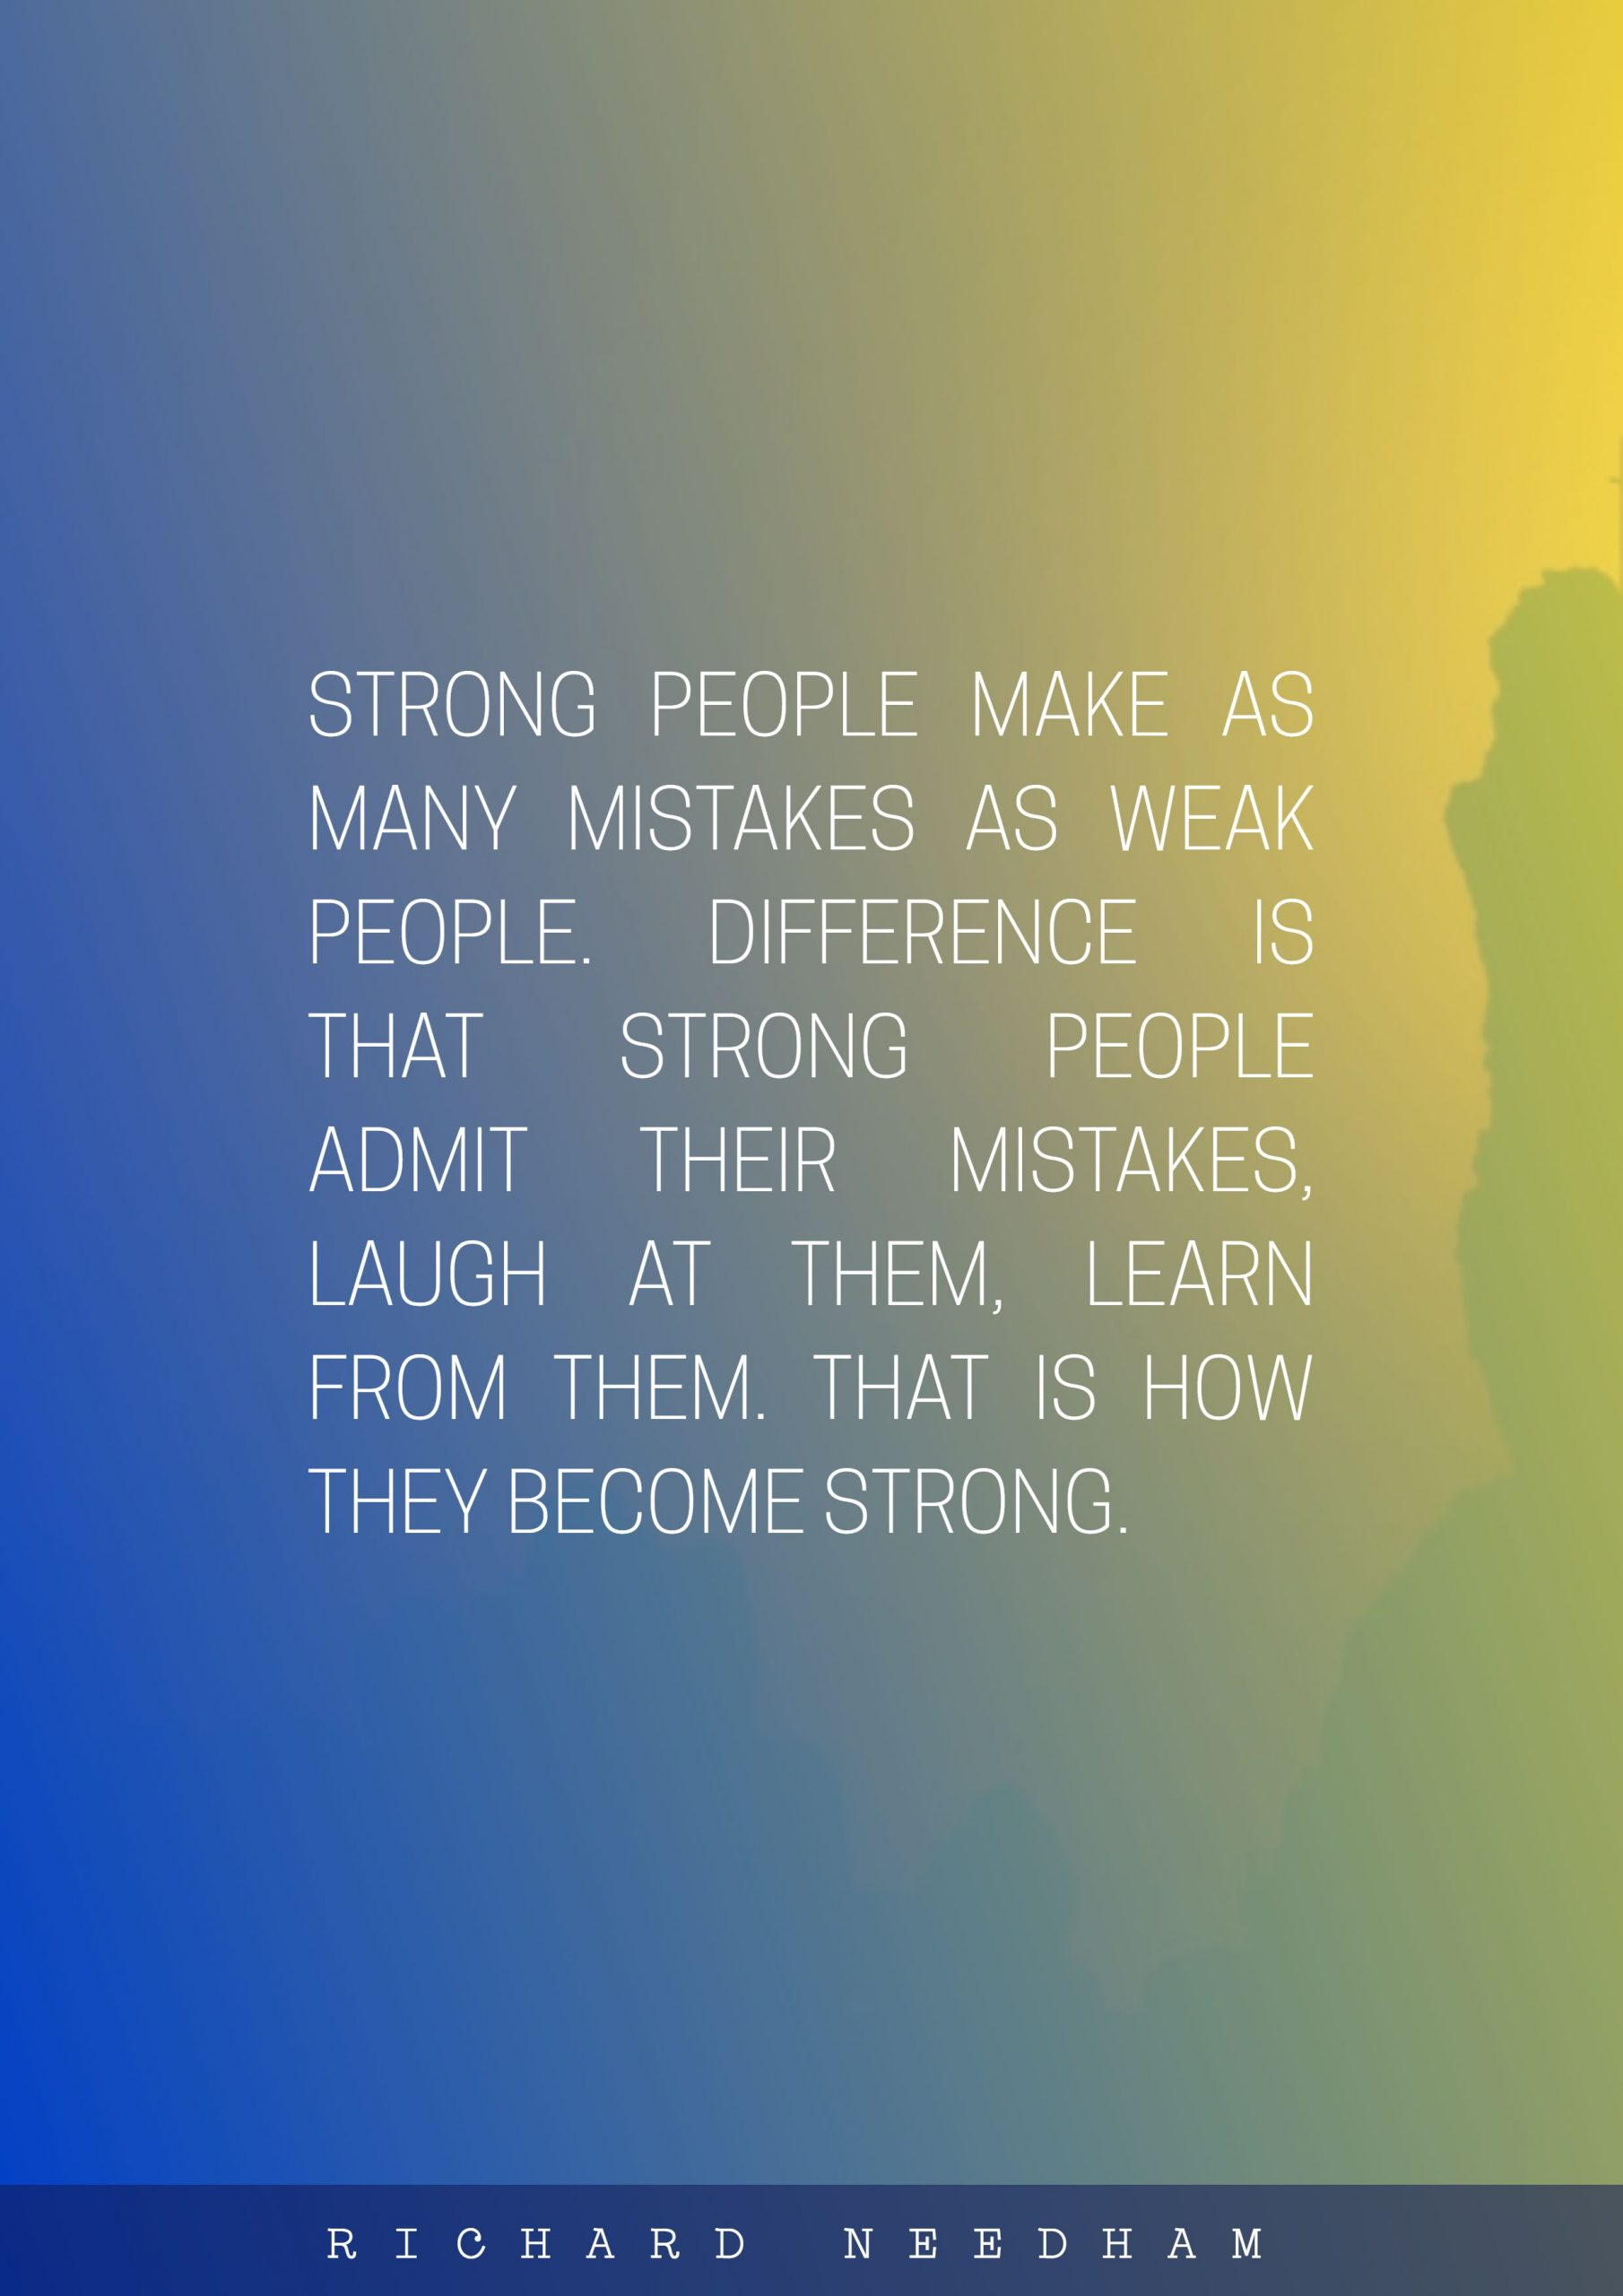 Quotes image of Strong people make as many mistakes as weak people. Difference is that strong people admit their mistakes, laugh at them, learn from them. That is how they become strong.